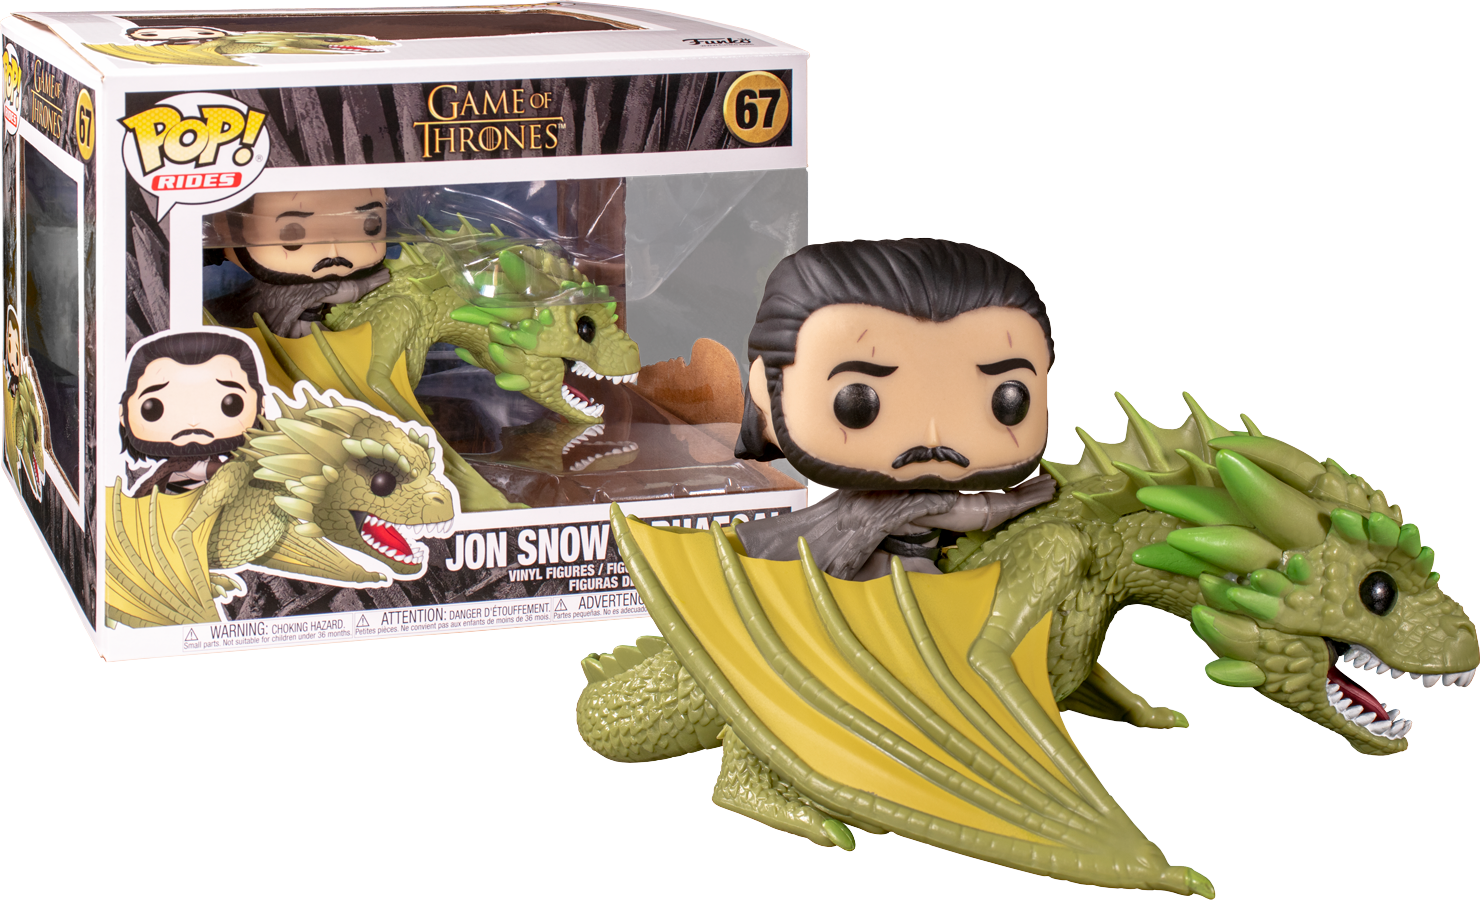 Funko POP Game of Thrones Jon Snow & Rhaegal Figure - #67